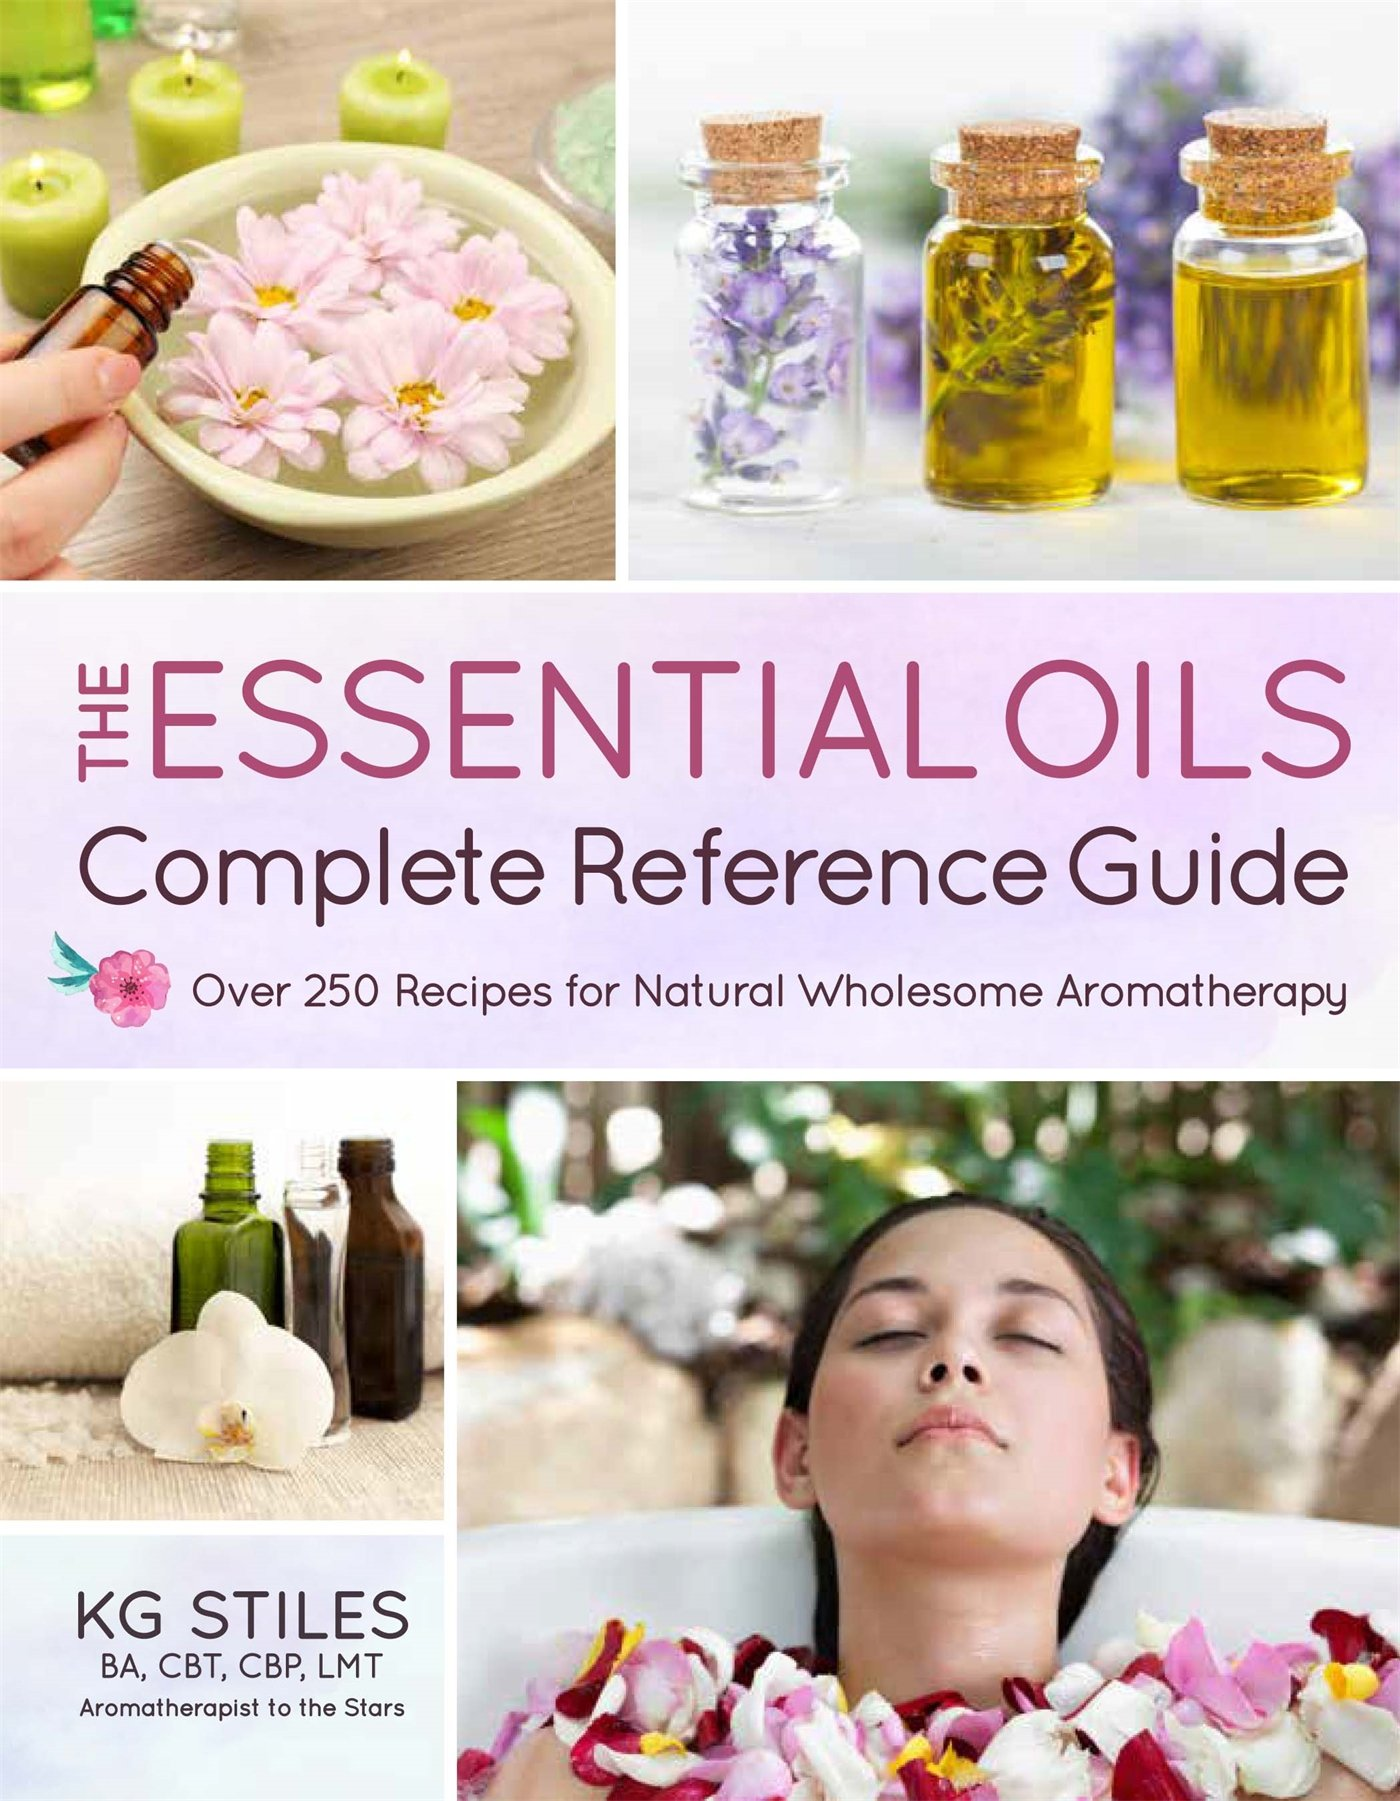 Essential Oils Complete Reference Guide